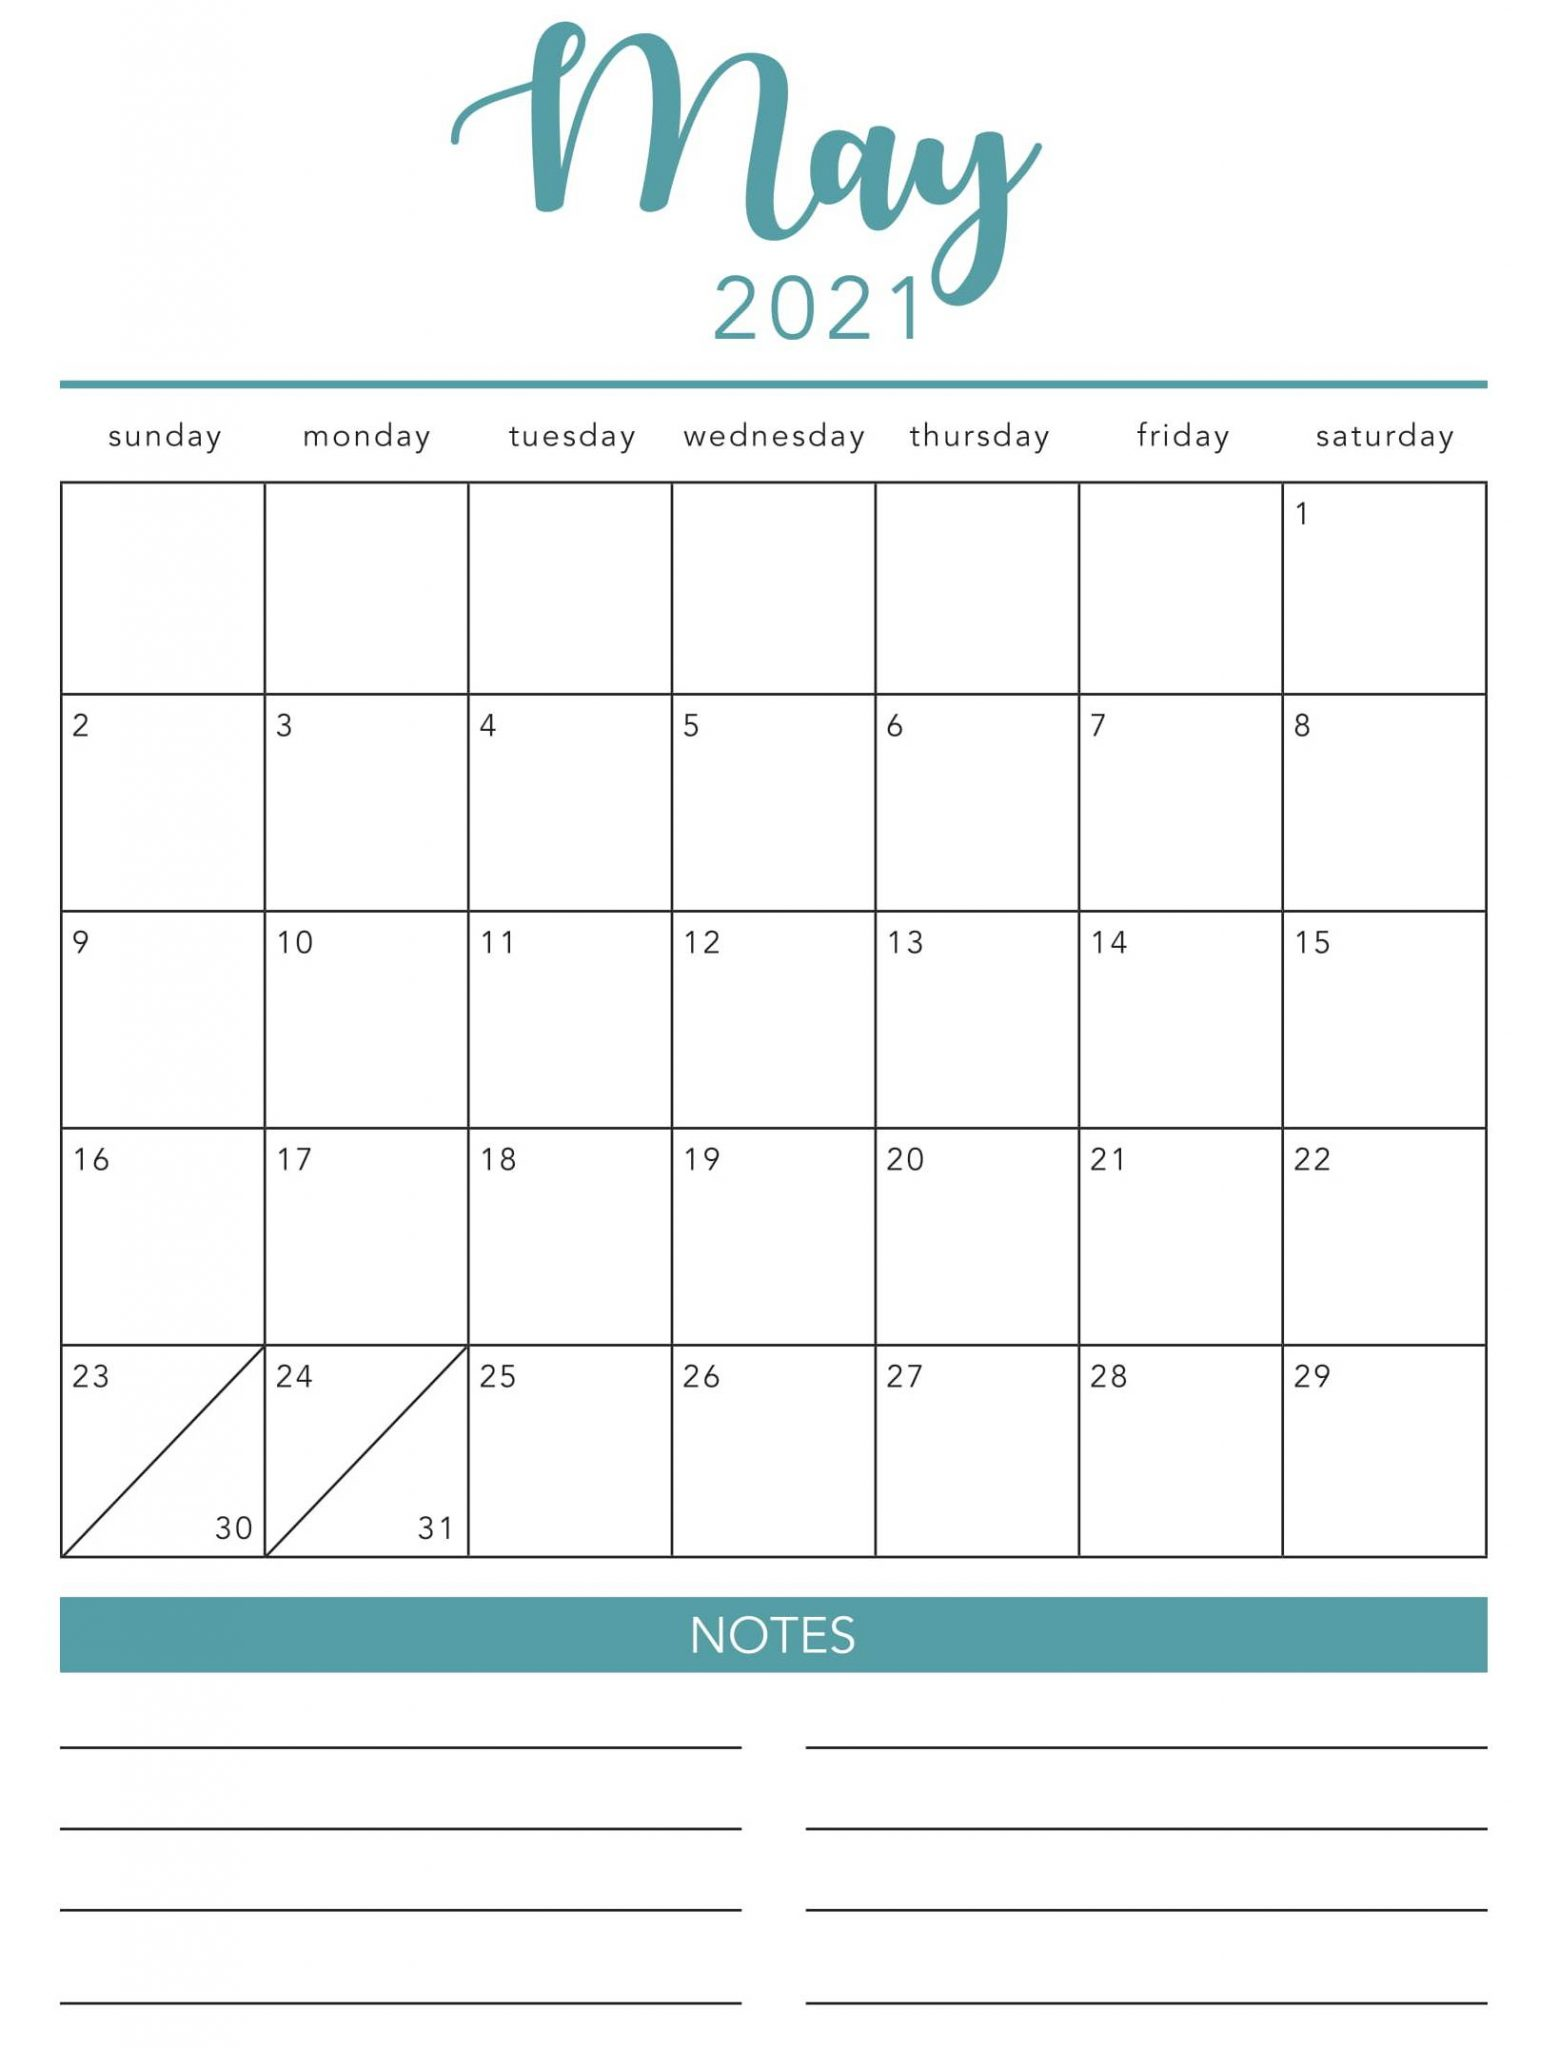 Fillable Calendar May 2021 with Notes